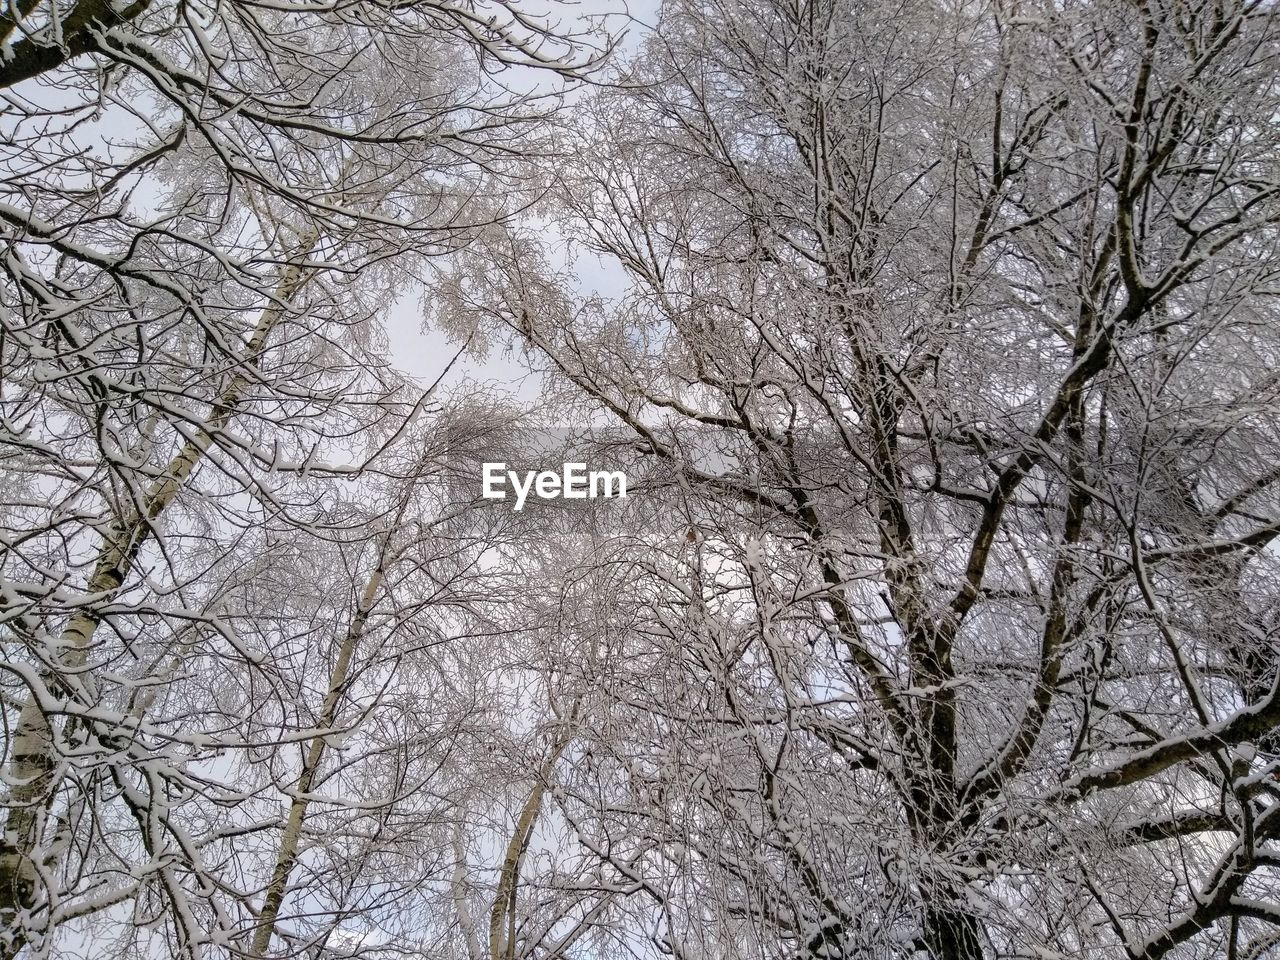 tree, winter, snow, branch, plant, cold temperature, bare tree, no people, nature, low angle view, tranquility, beauty in nature, day, full frame, land, white color, sky, frozen, backgrounds, outdoors, extreme weather, woodland, snowing, blizzard, tree canopy